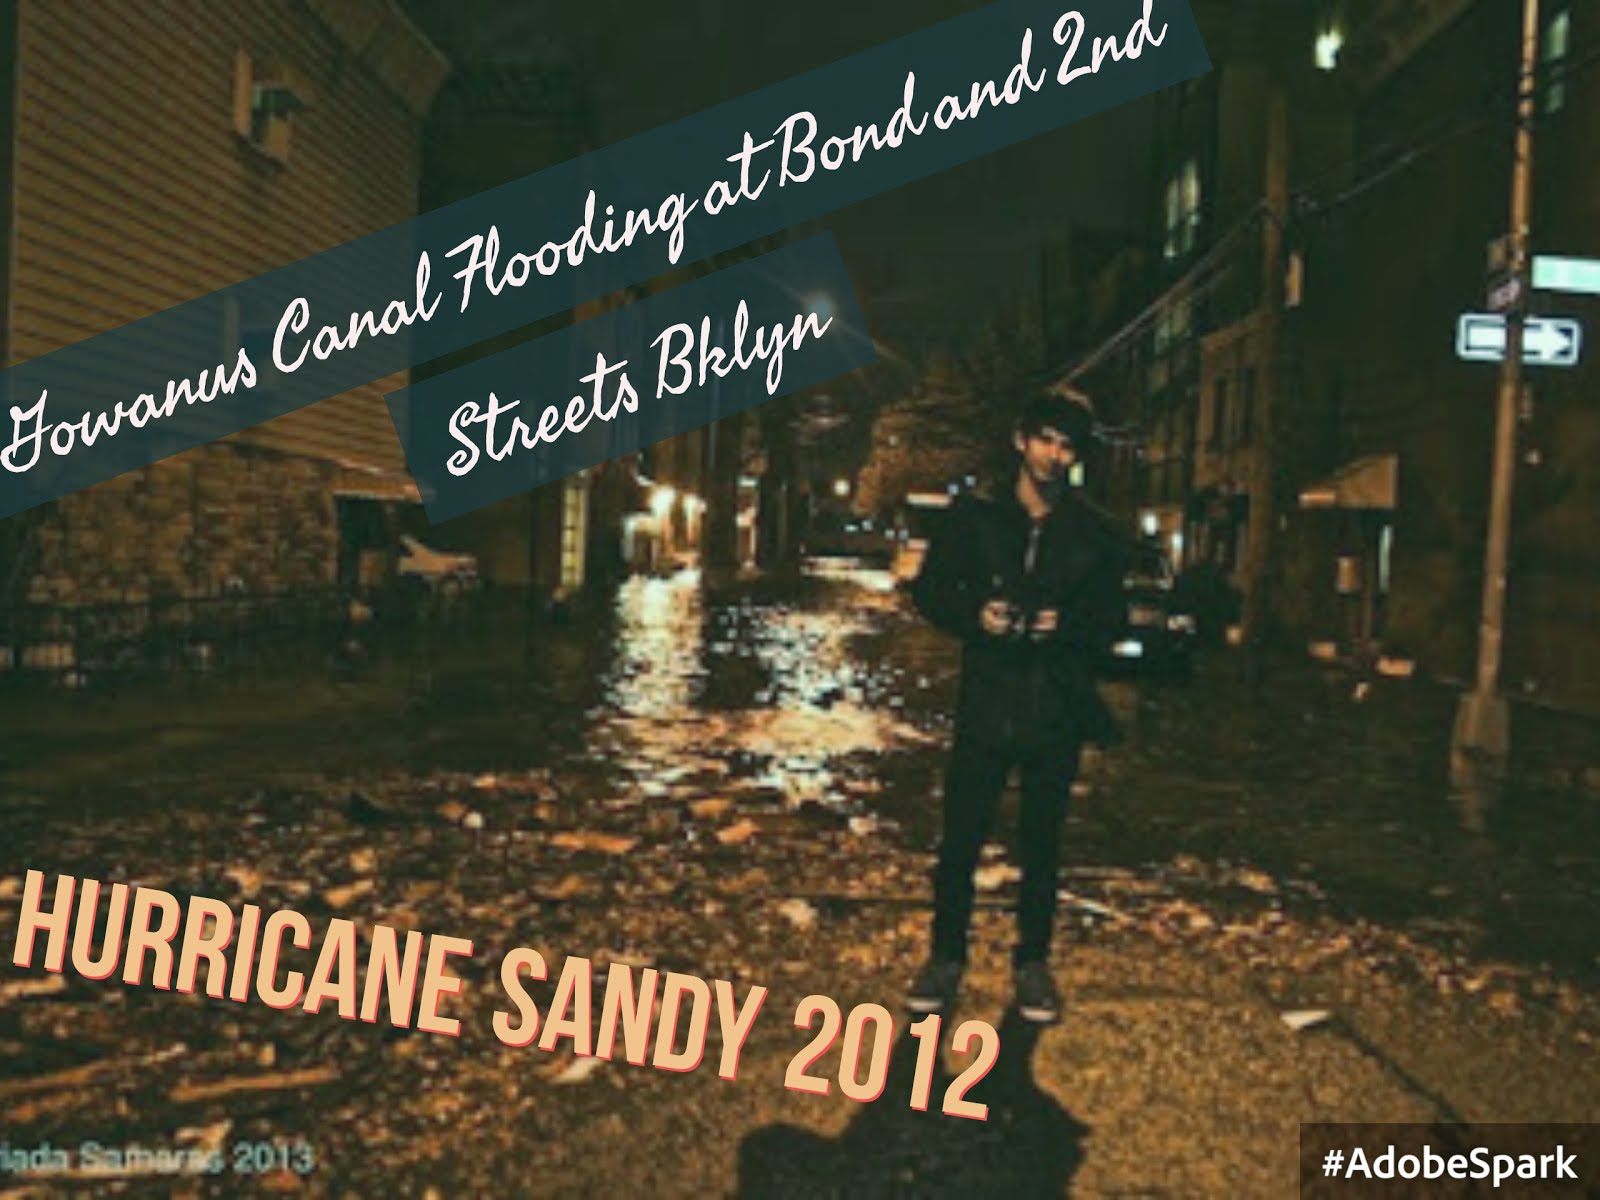 Hurricane Sandy 2012 and Gowanus Canal